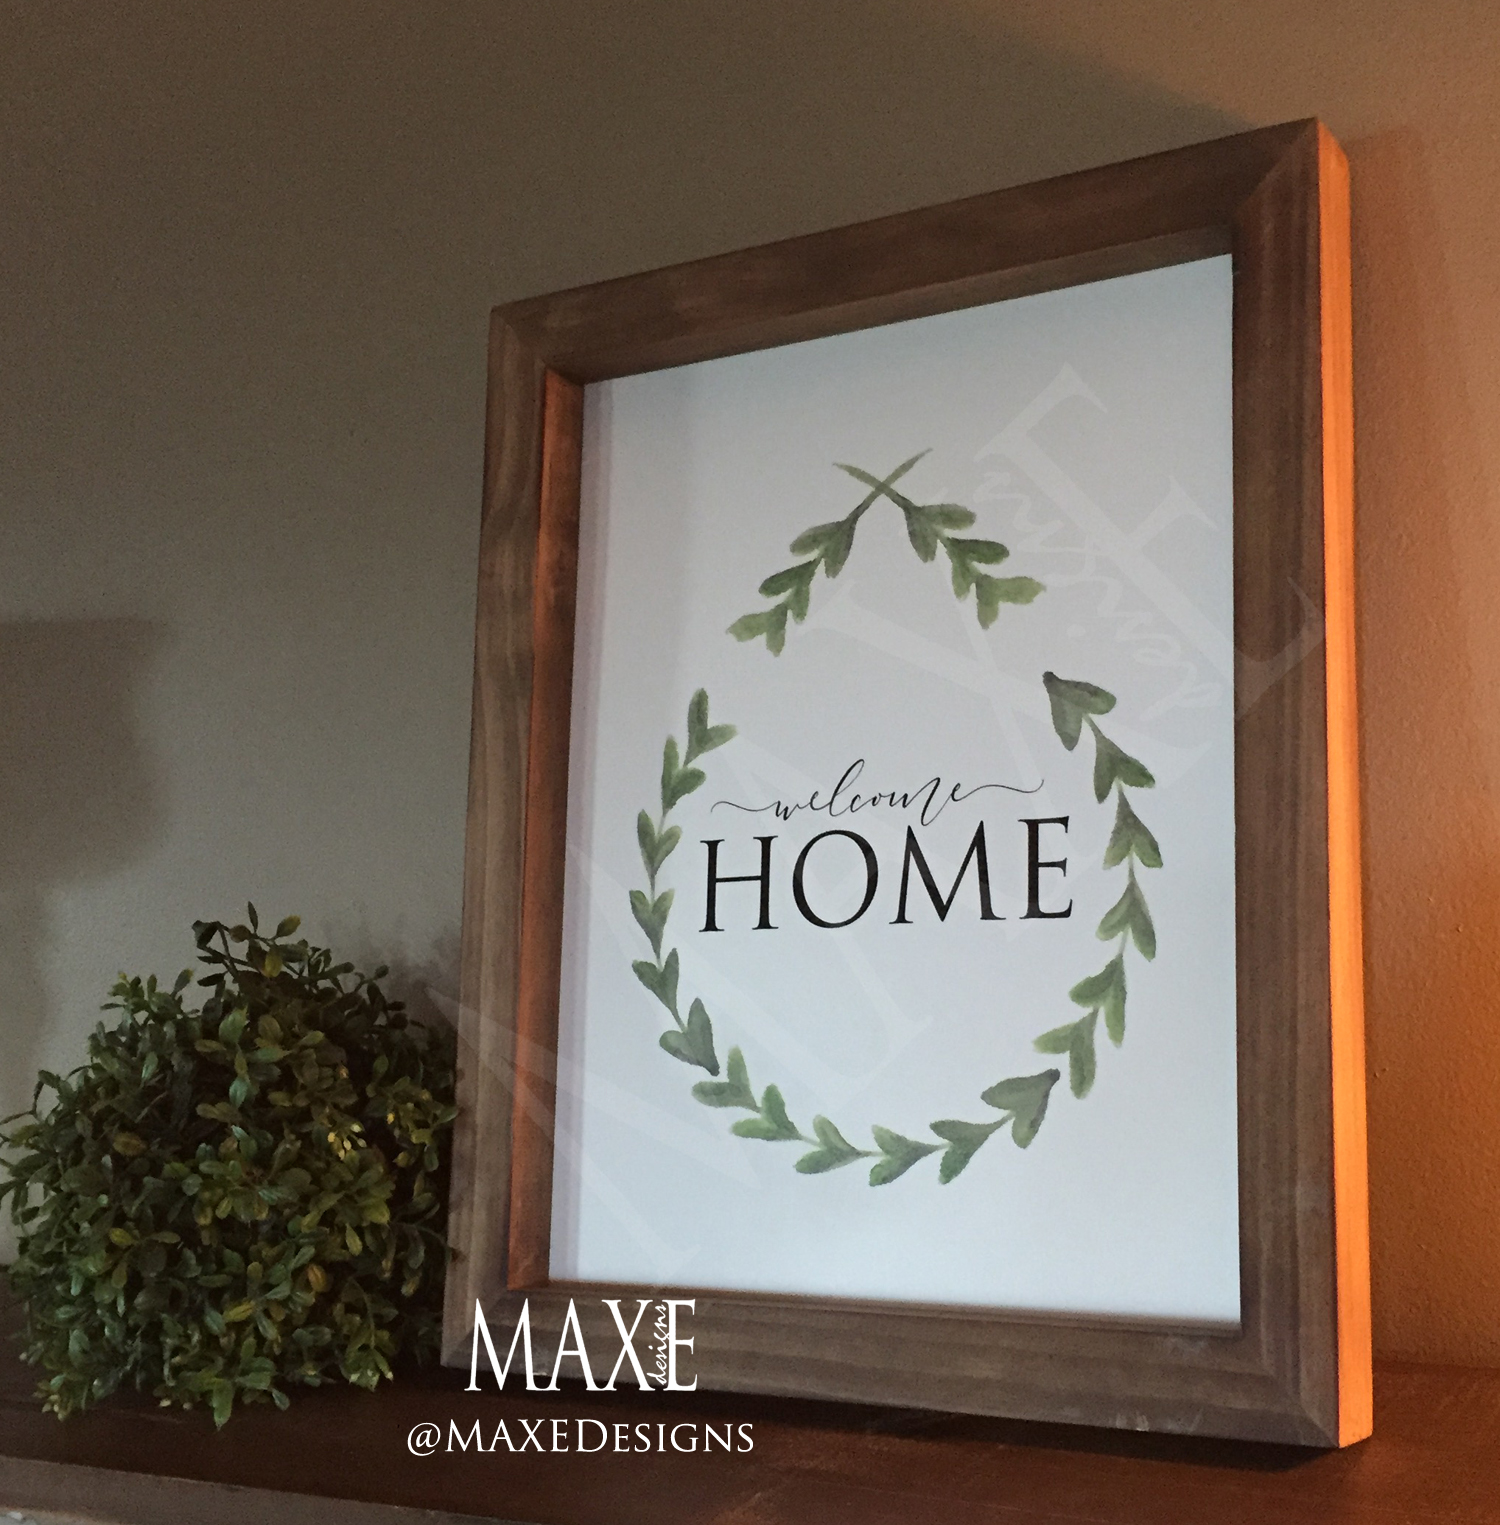 Welcome Home 1 MAXE Designs 2018 copy.jpg